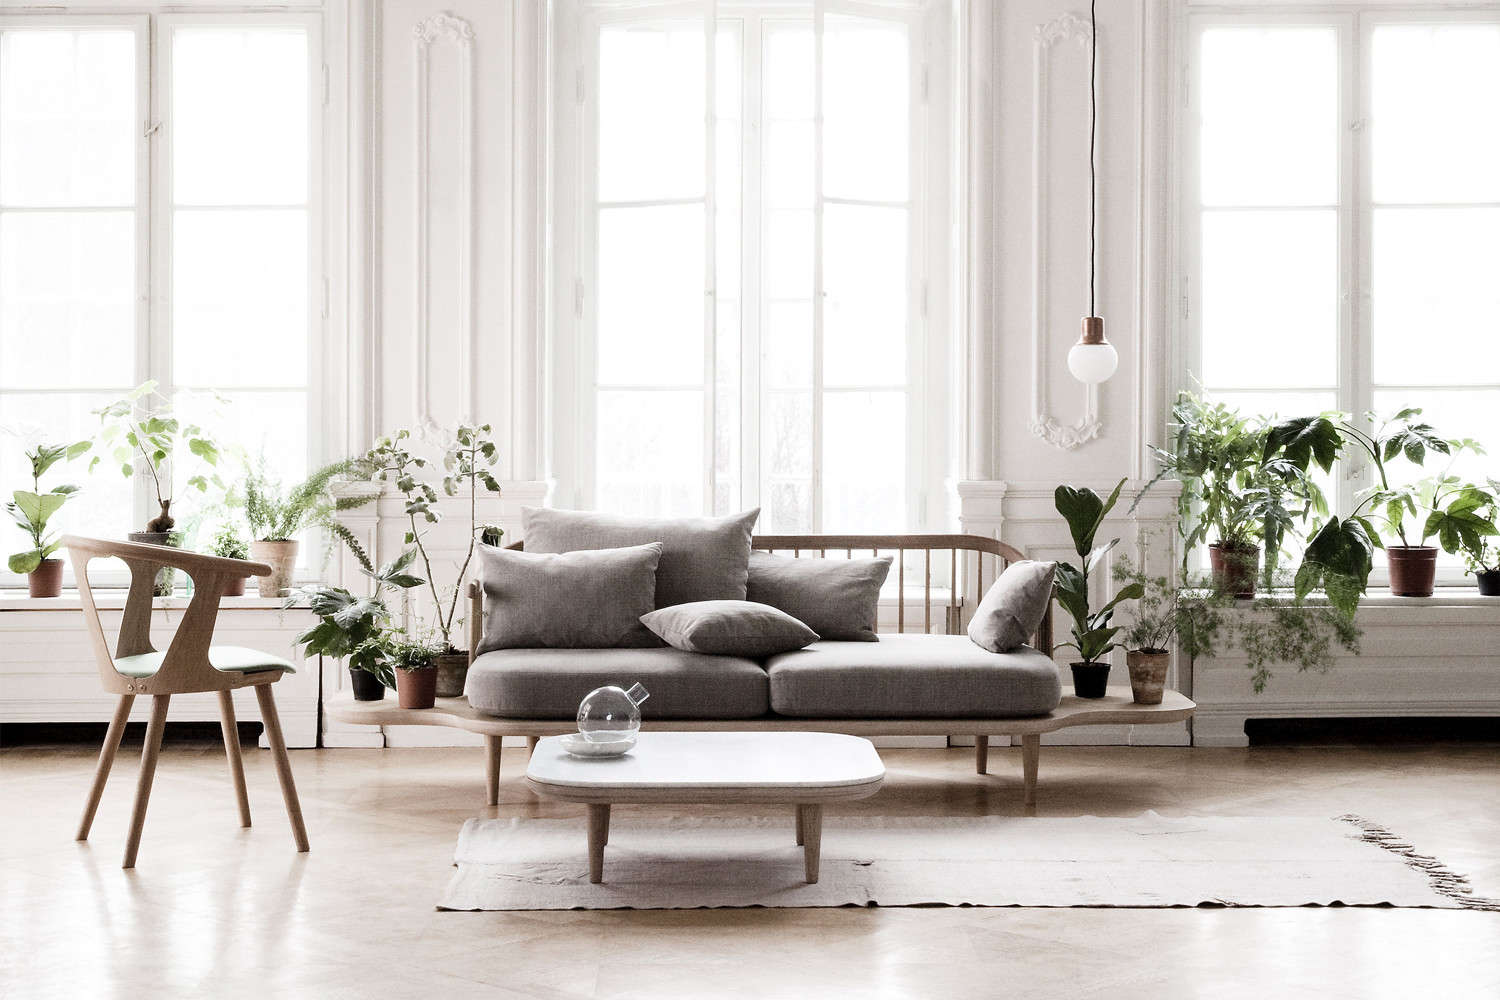 High Low Space Copenhagen Fly Sofa Set Vs Anthropologie Kalmar